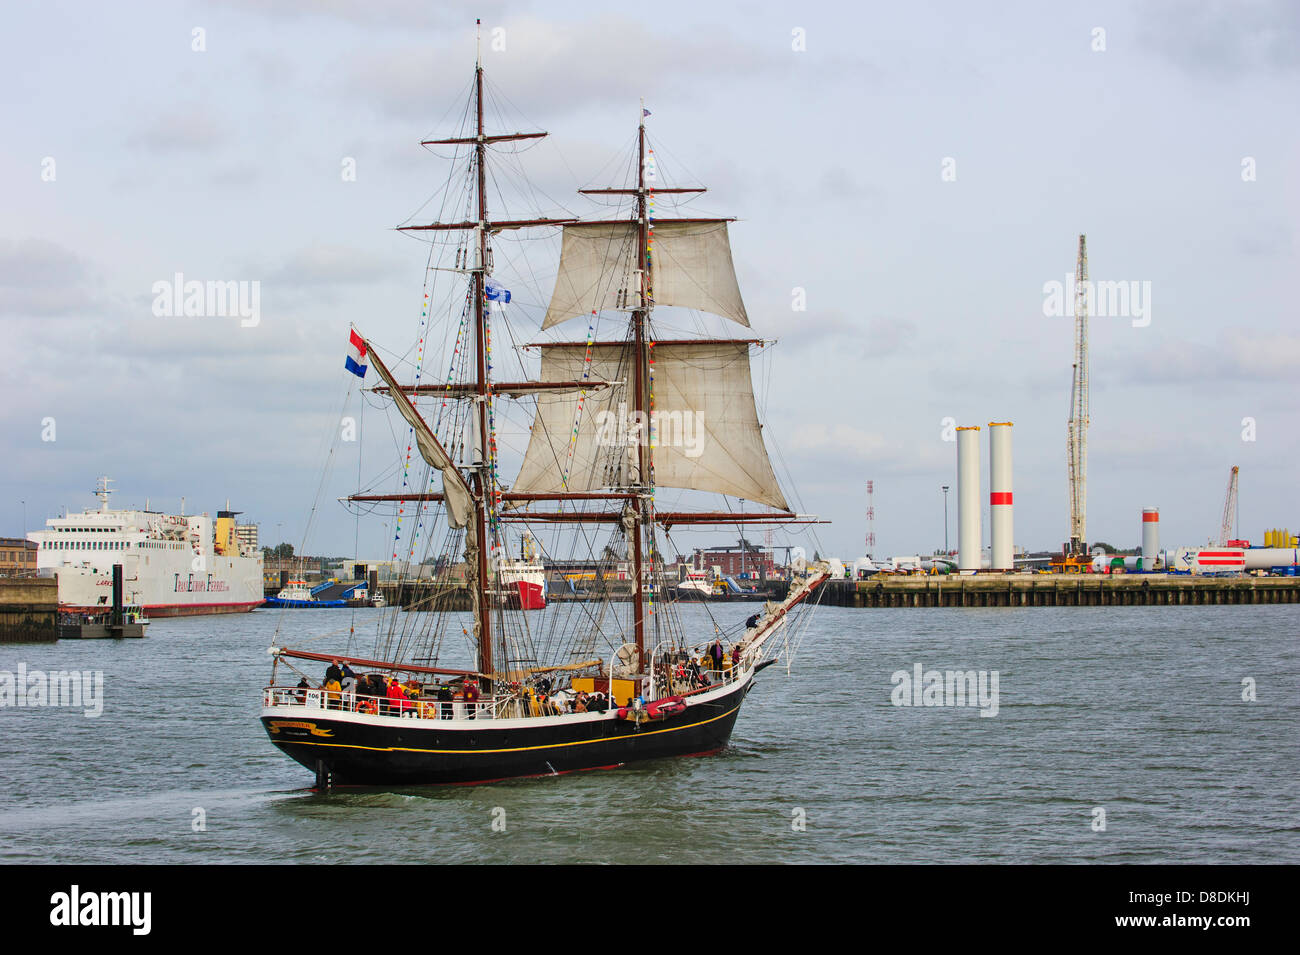 two master sailing ship morgenster during the maritime festival stock photo two master sailing ship morgenster during the maritime festival oostende voor anker ostend at anchor 2013 belgium